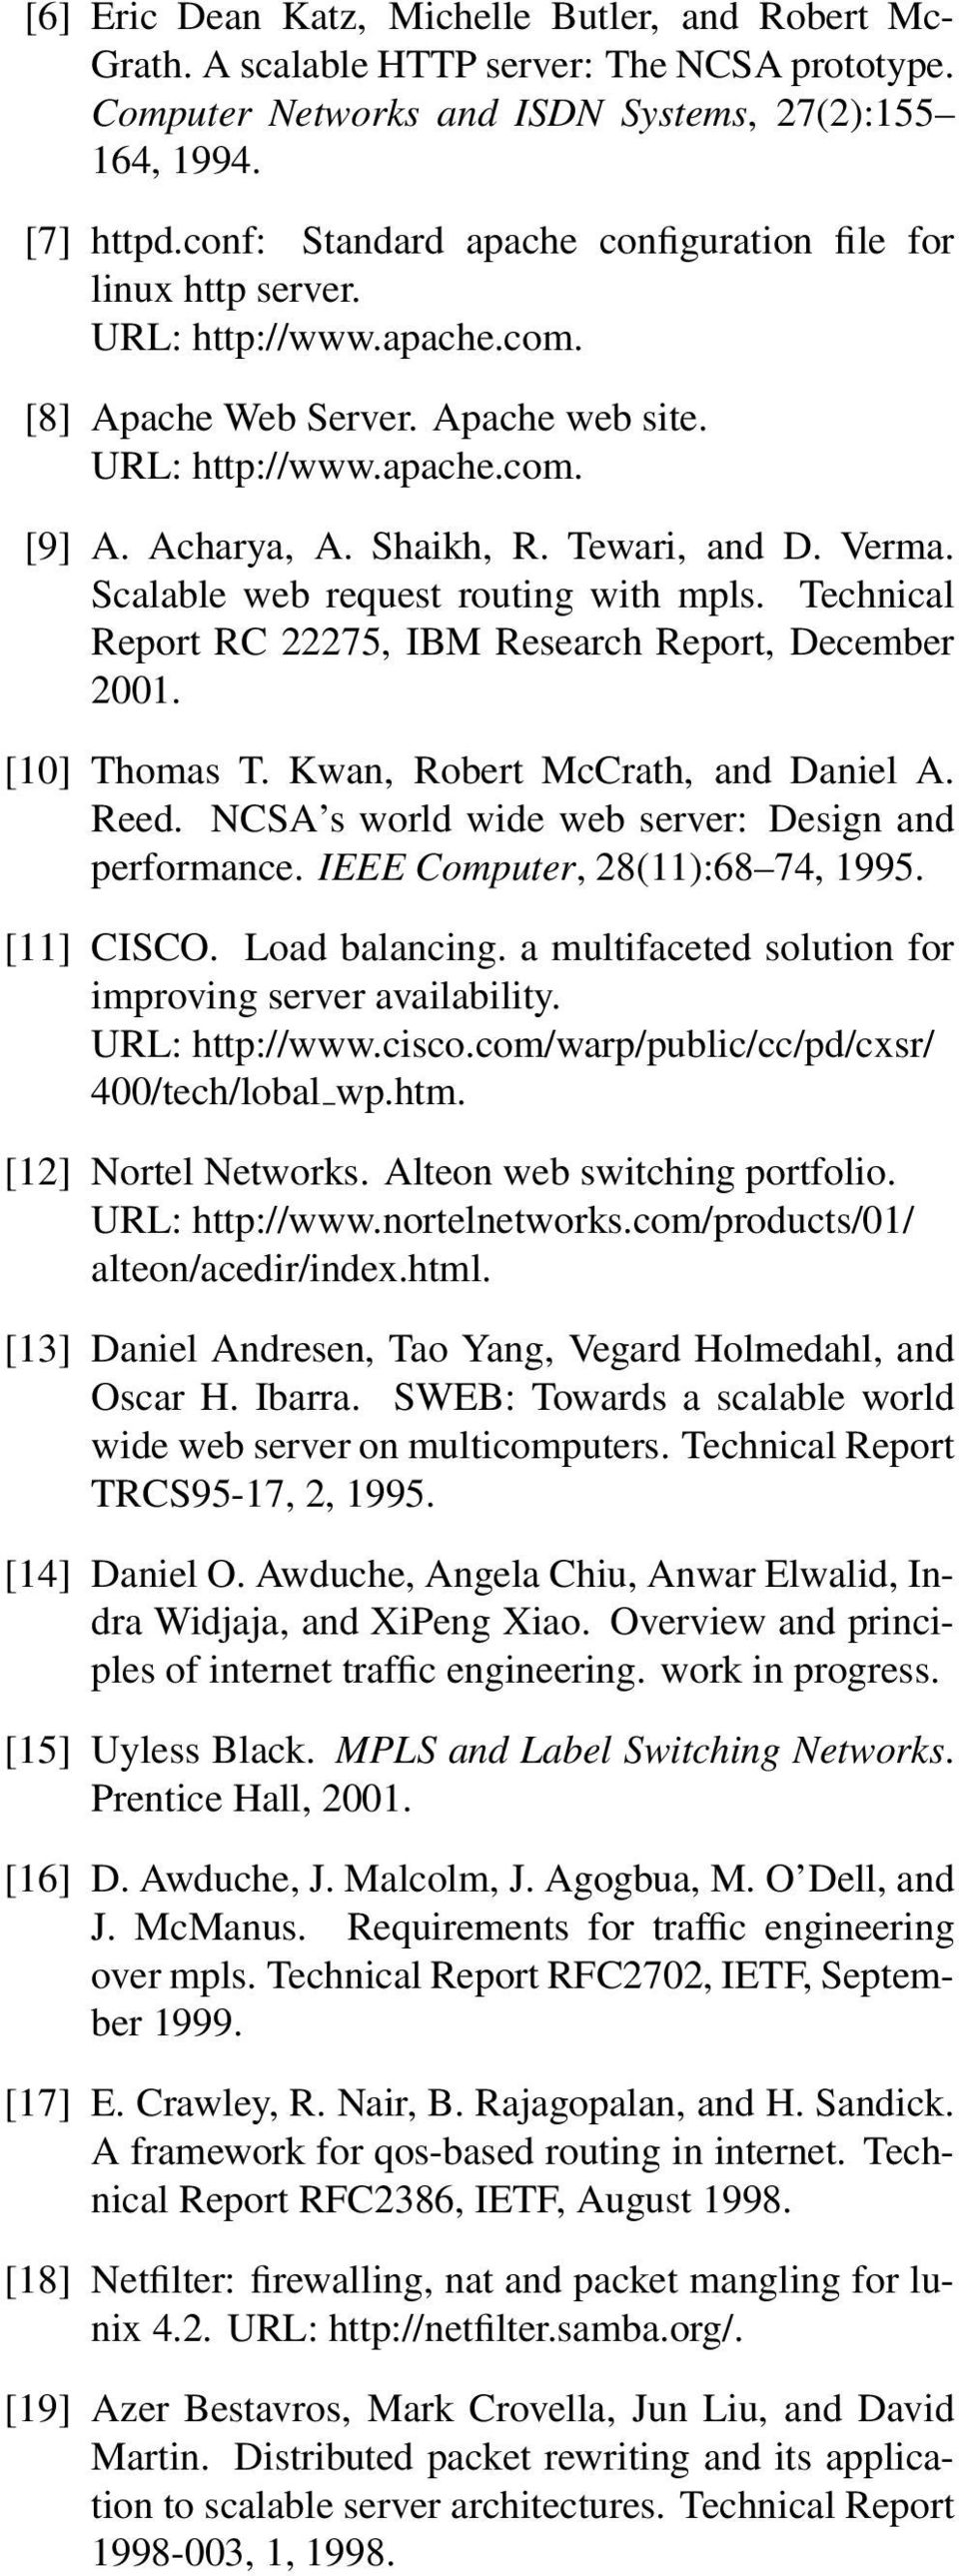 Tewari, and D. Verma. Scalable web request routing with mpls. Technical Report RC 22275, IBM Research Report, December 2001. [10] Thomas T. Kwan, Robert McCrath, and Daniel A. Reed.